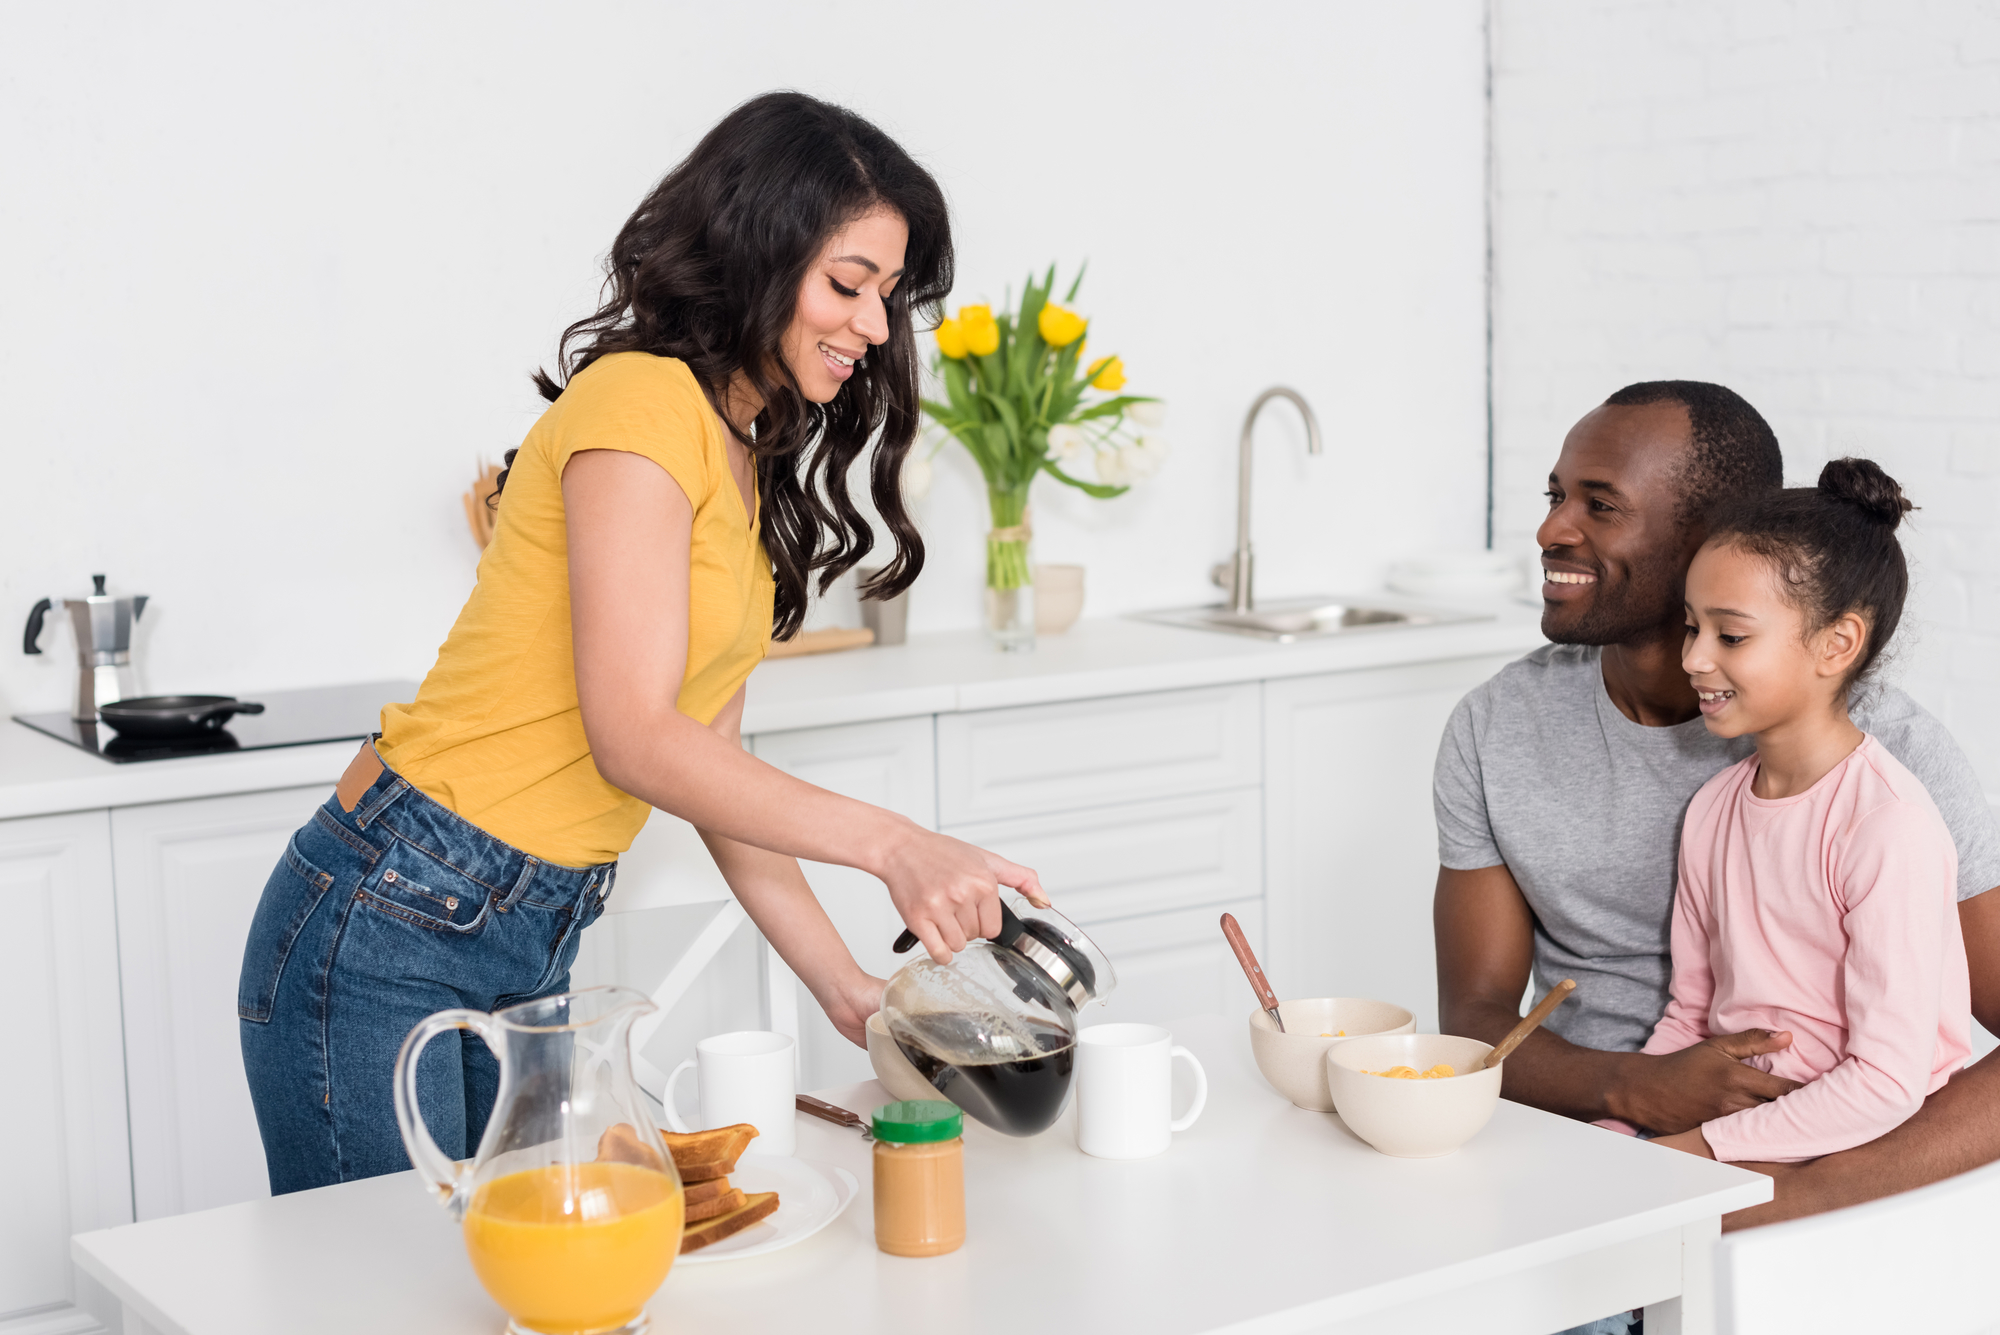 Why You Can Make His Little Wishes Your Big Priority